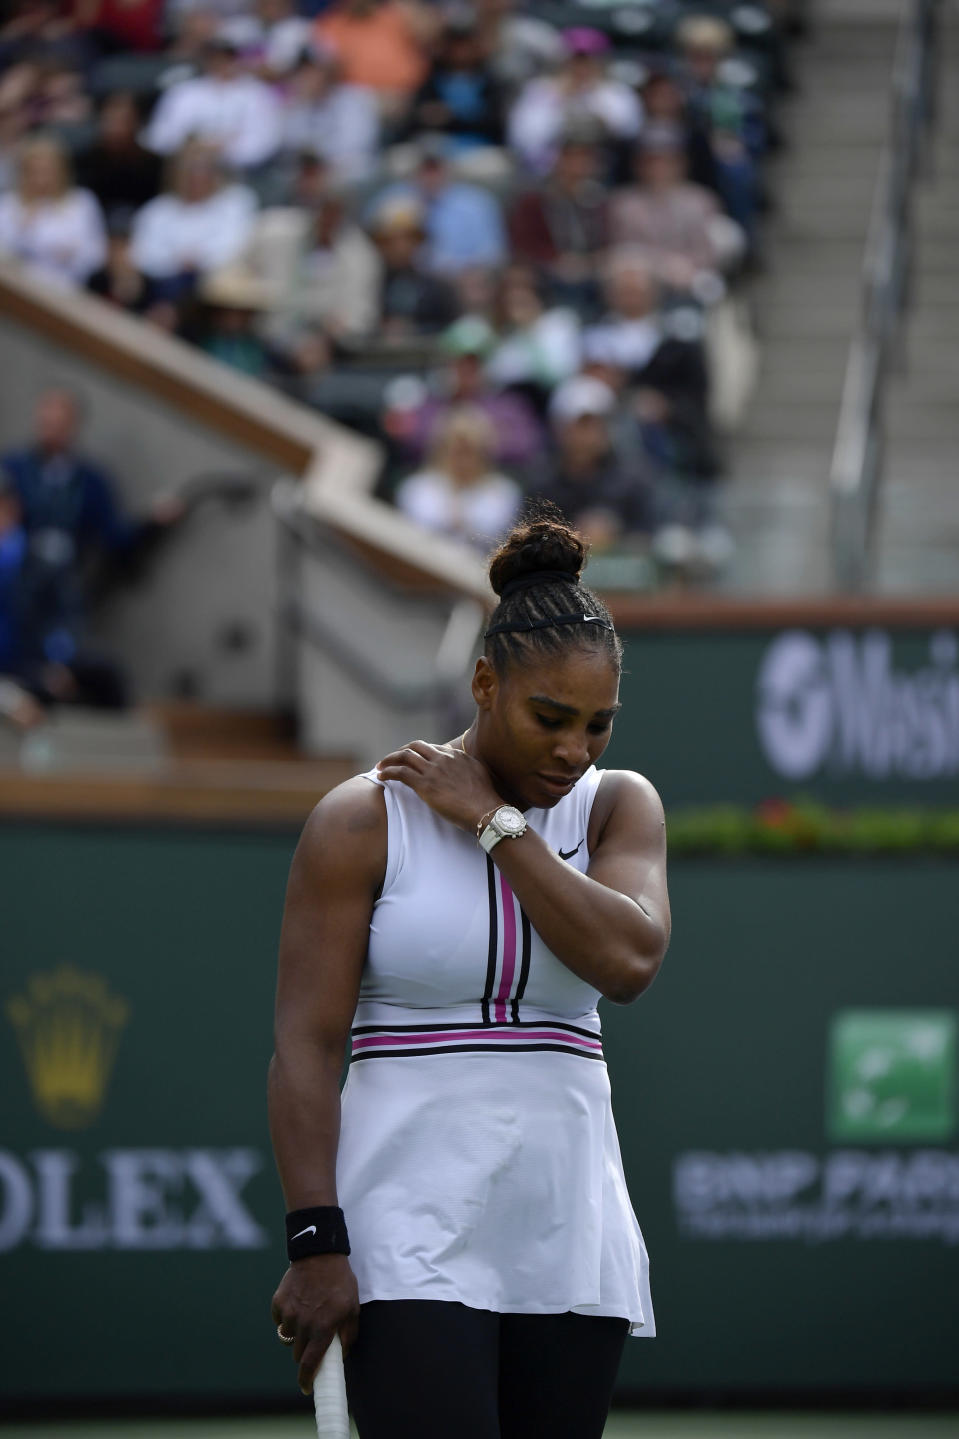 Serena Williams reacts during a match against Garbine Muguruza, of Spain, at the BNP Paribas Open tennis tournament Sunday, March 10, 2019, in Indian Wells, Calif. Williams retired from the match due to a medical issue. (AP Photo/Mark J. Terrill)